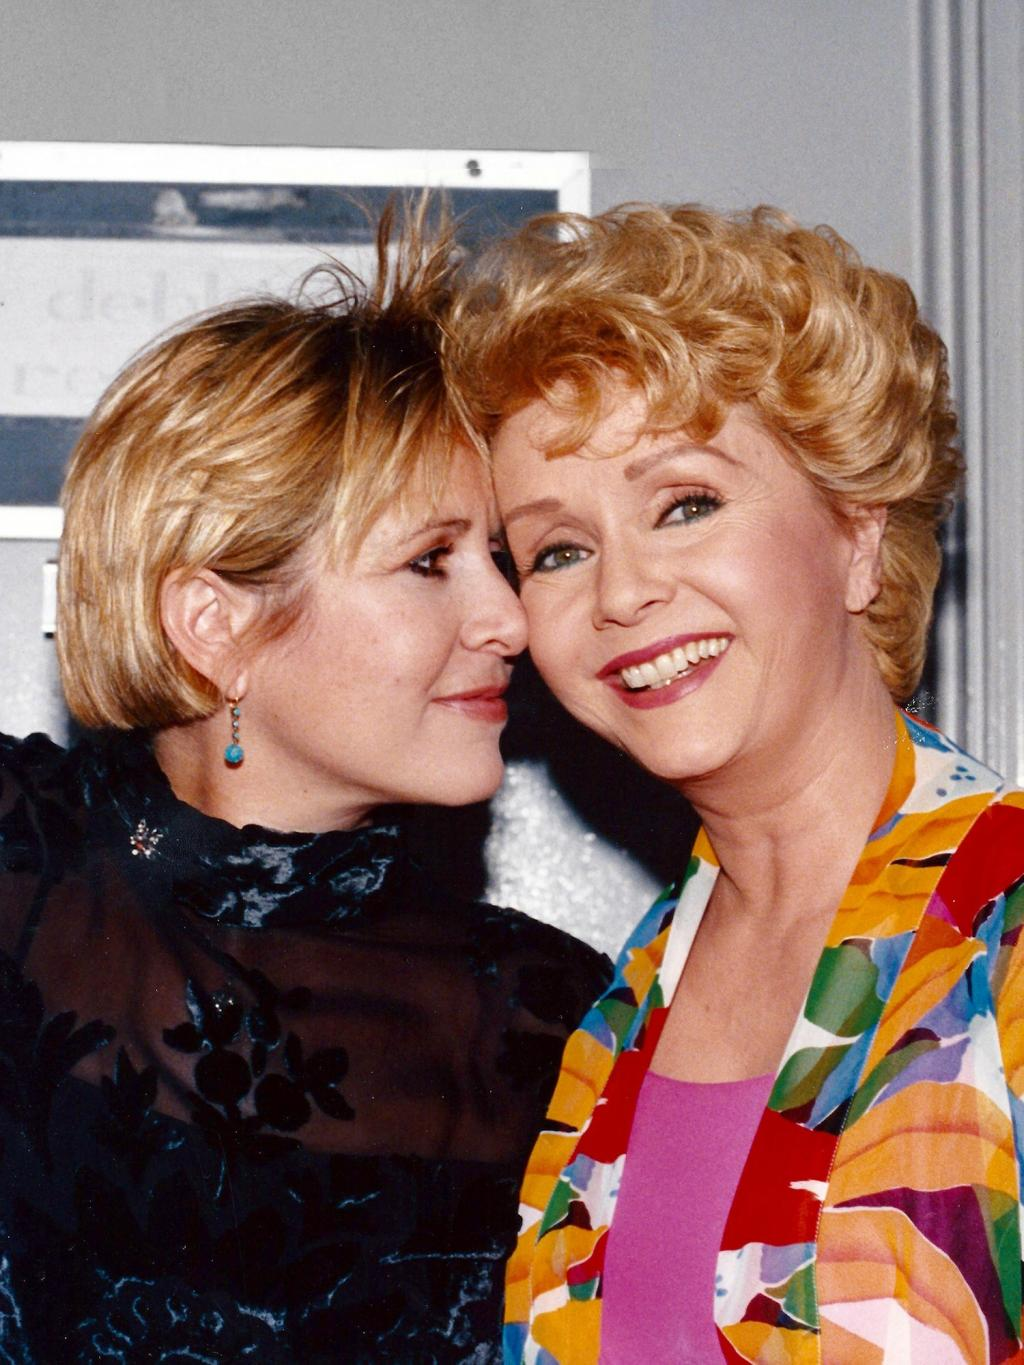 Todd Fisher Reveals New Details of Debbie Reynolds and Carrie Fisher's Public Memorial